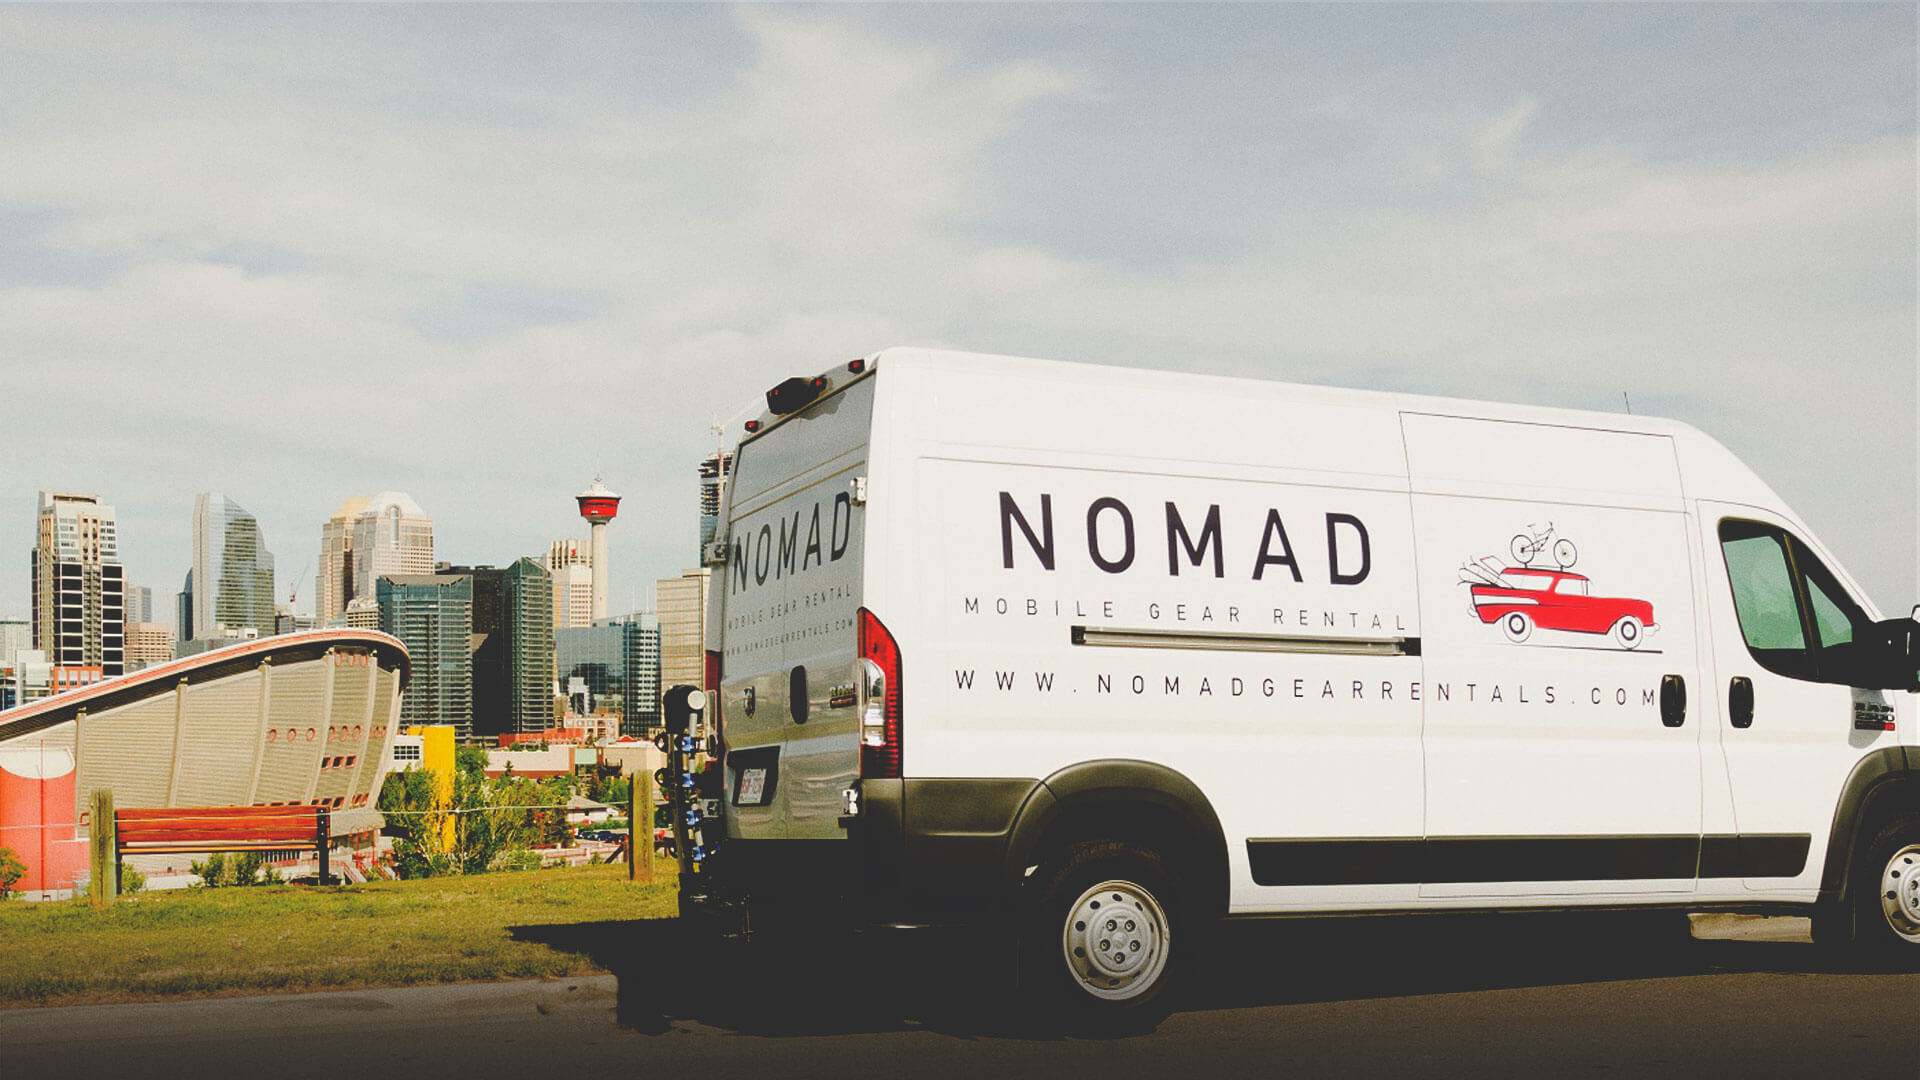 Nomad Mobile Gear Rental